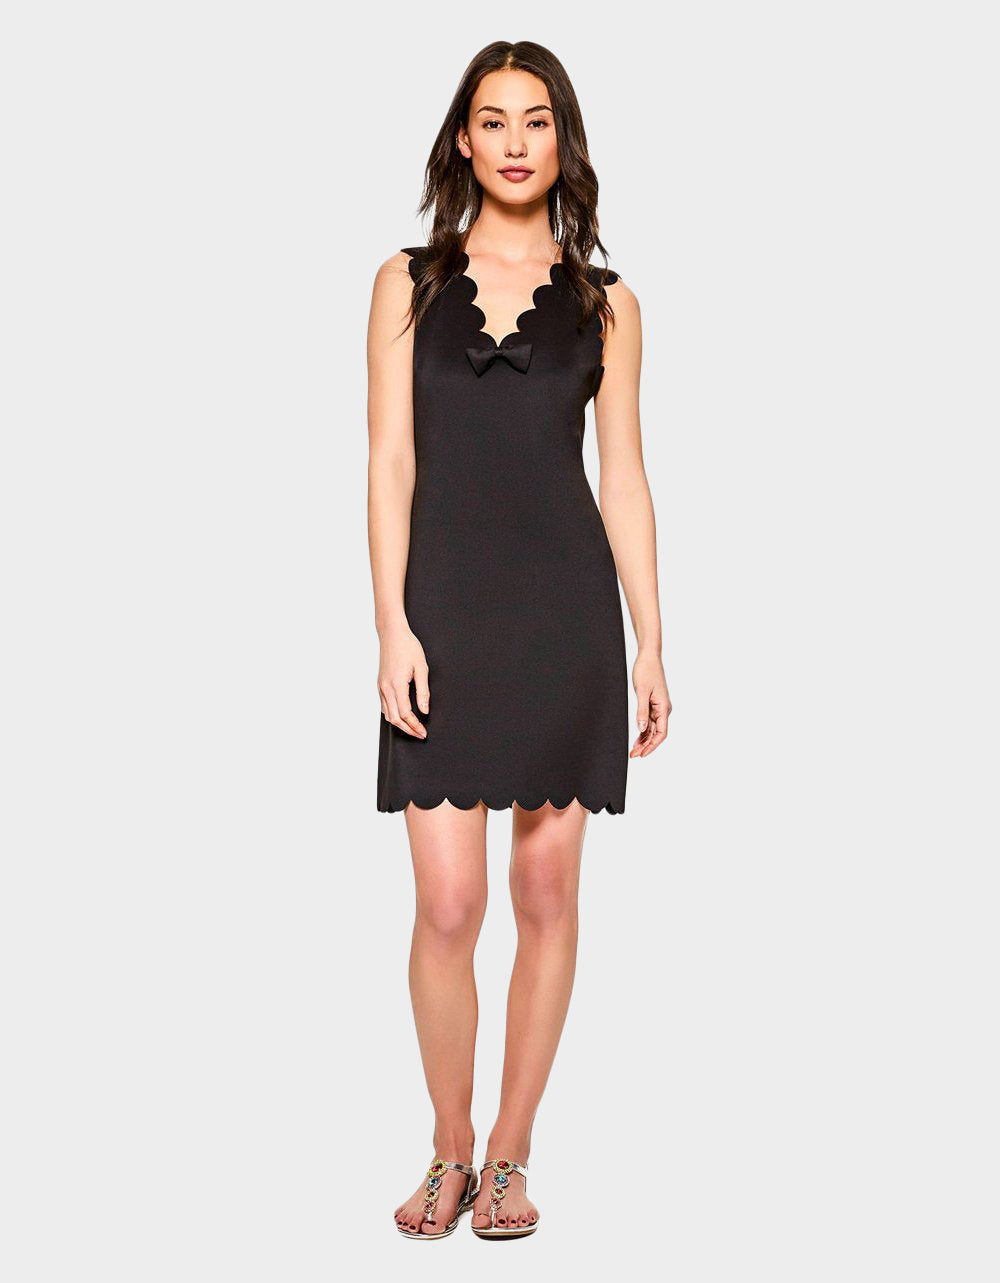 ON THE EDGE DRESS BLACK - APPAREL - Betsey Johnson